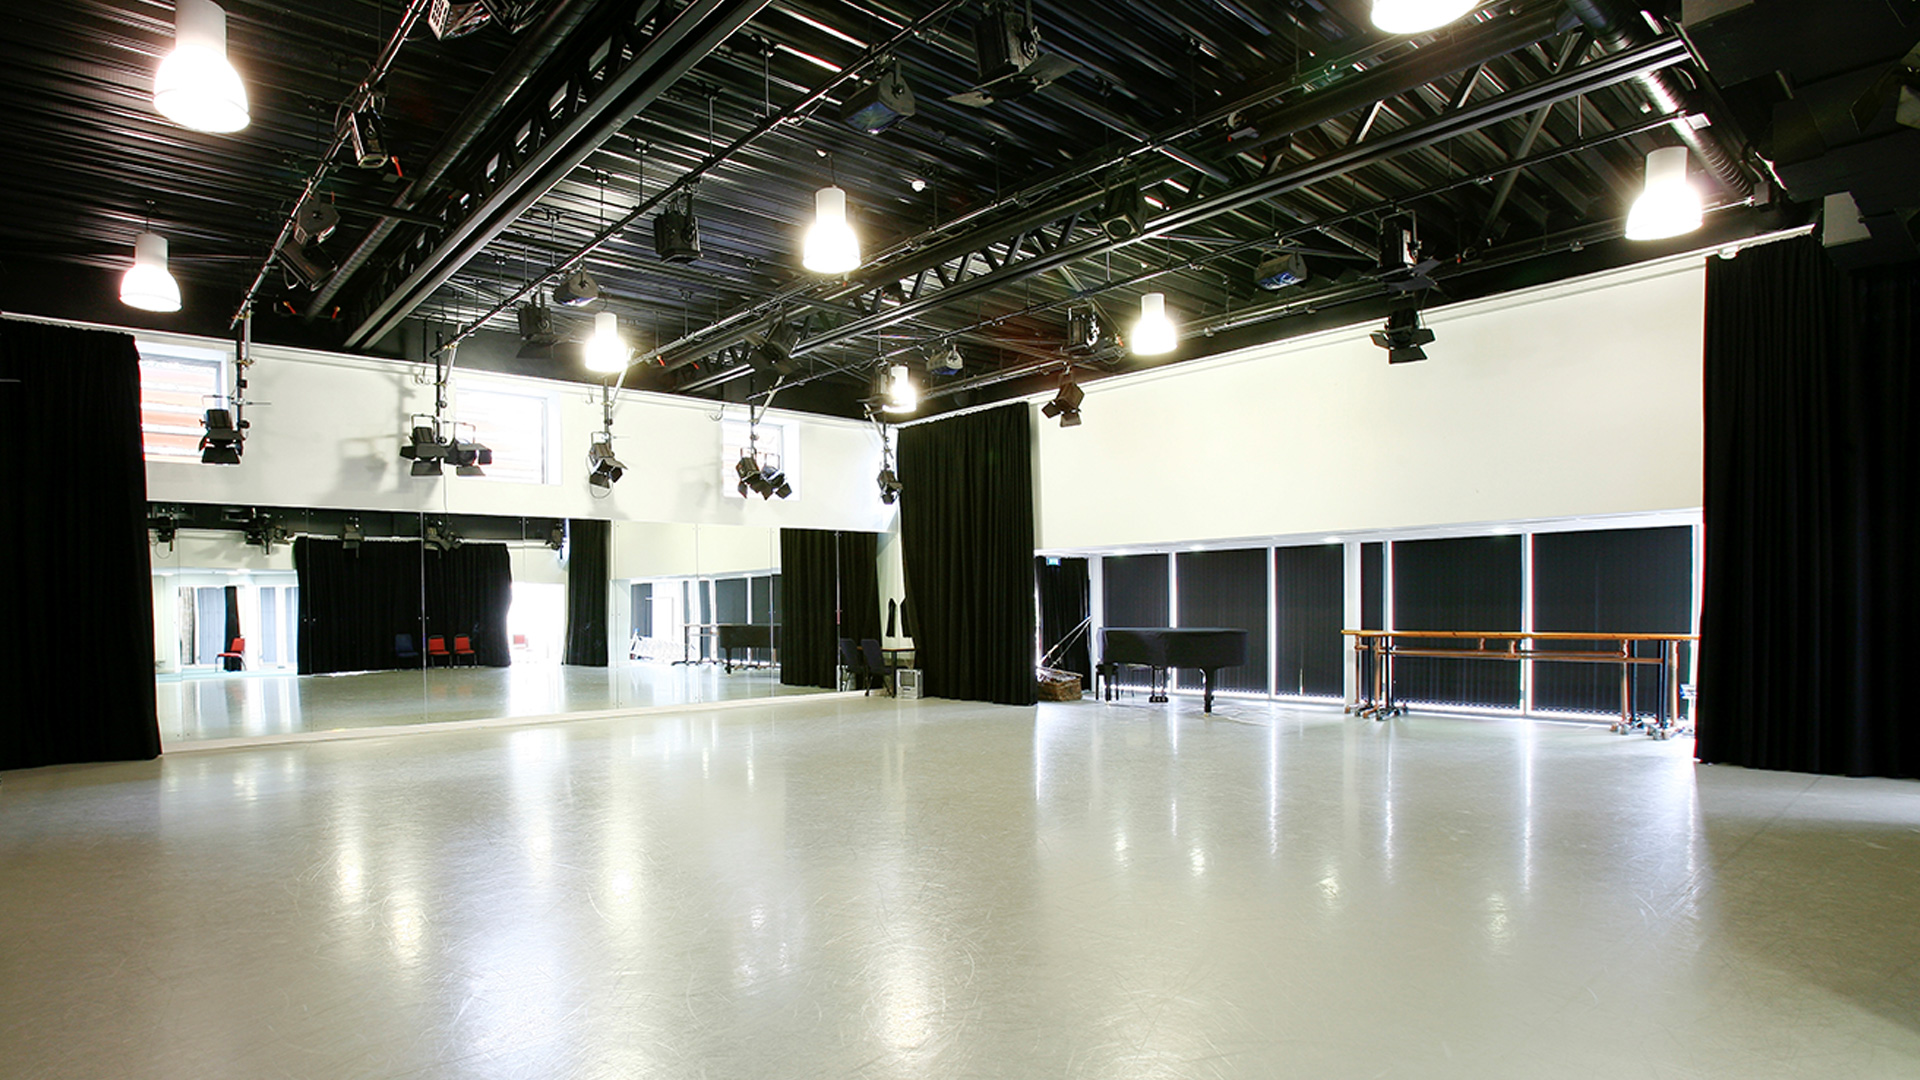 School's stage where events and performances are recorded using Matrox Monarch HDX.